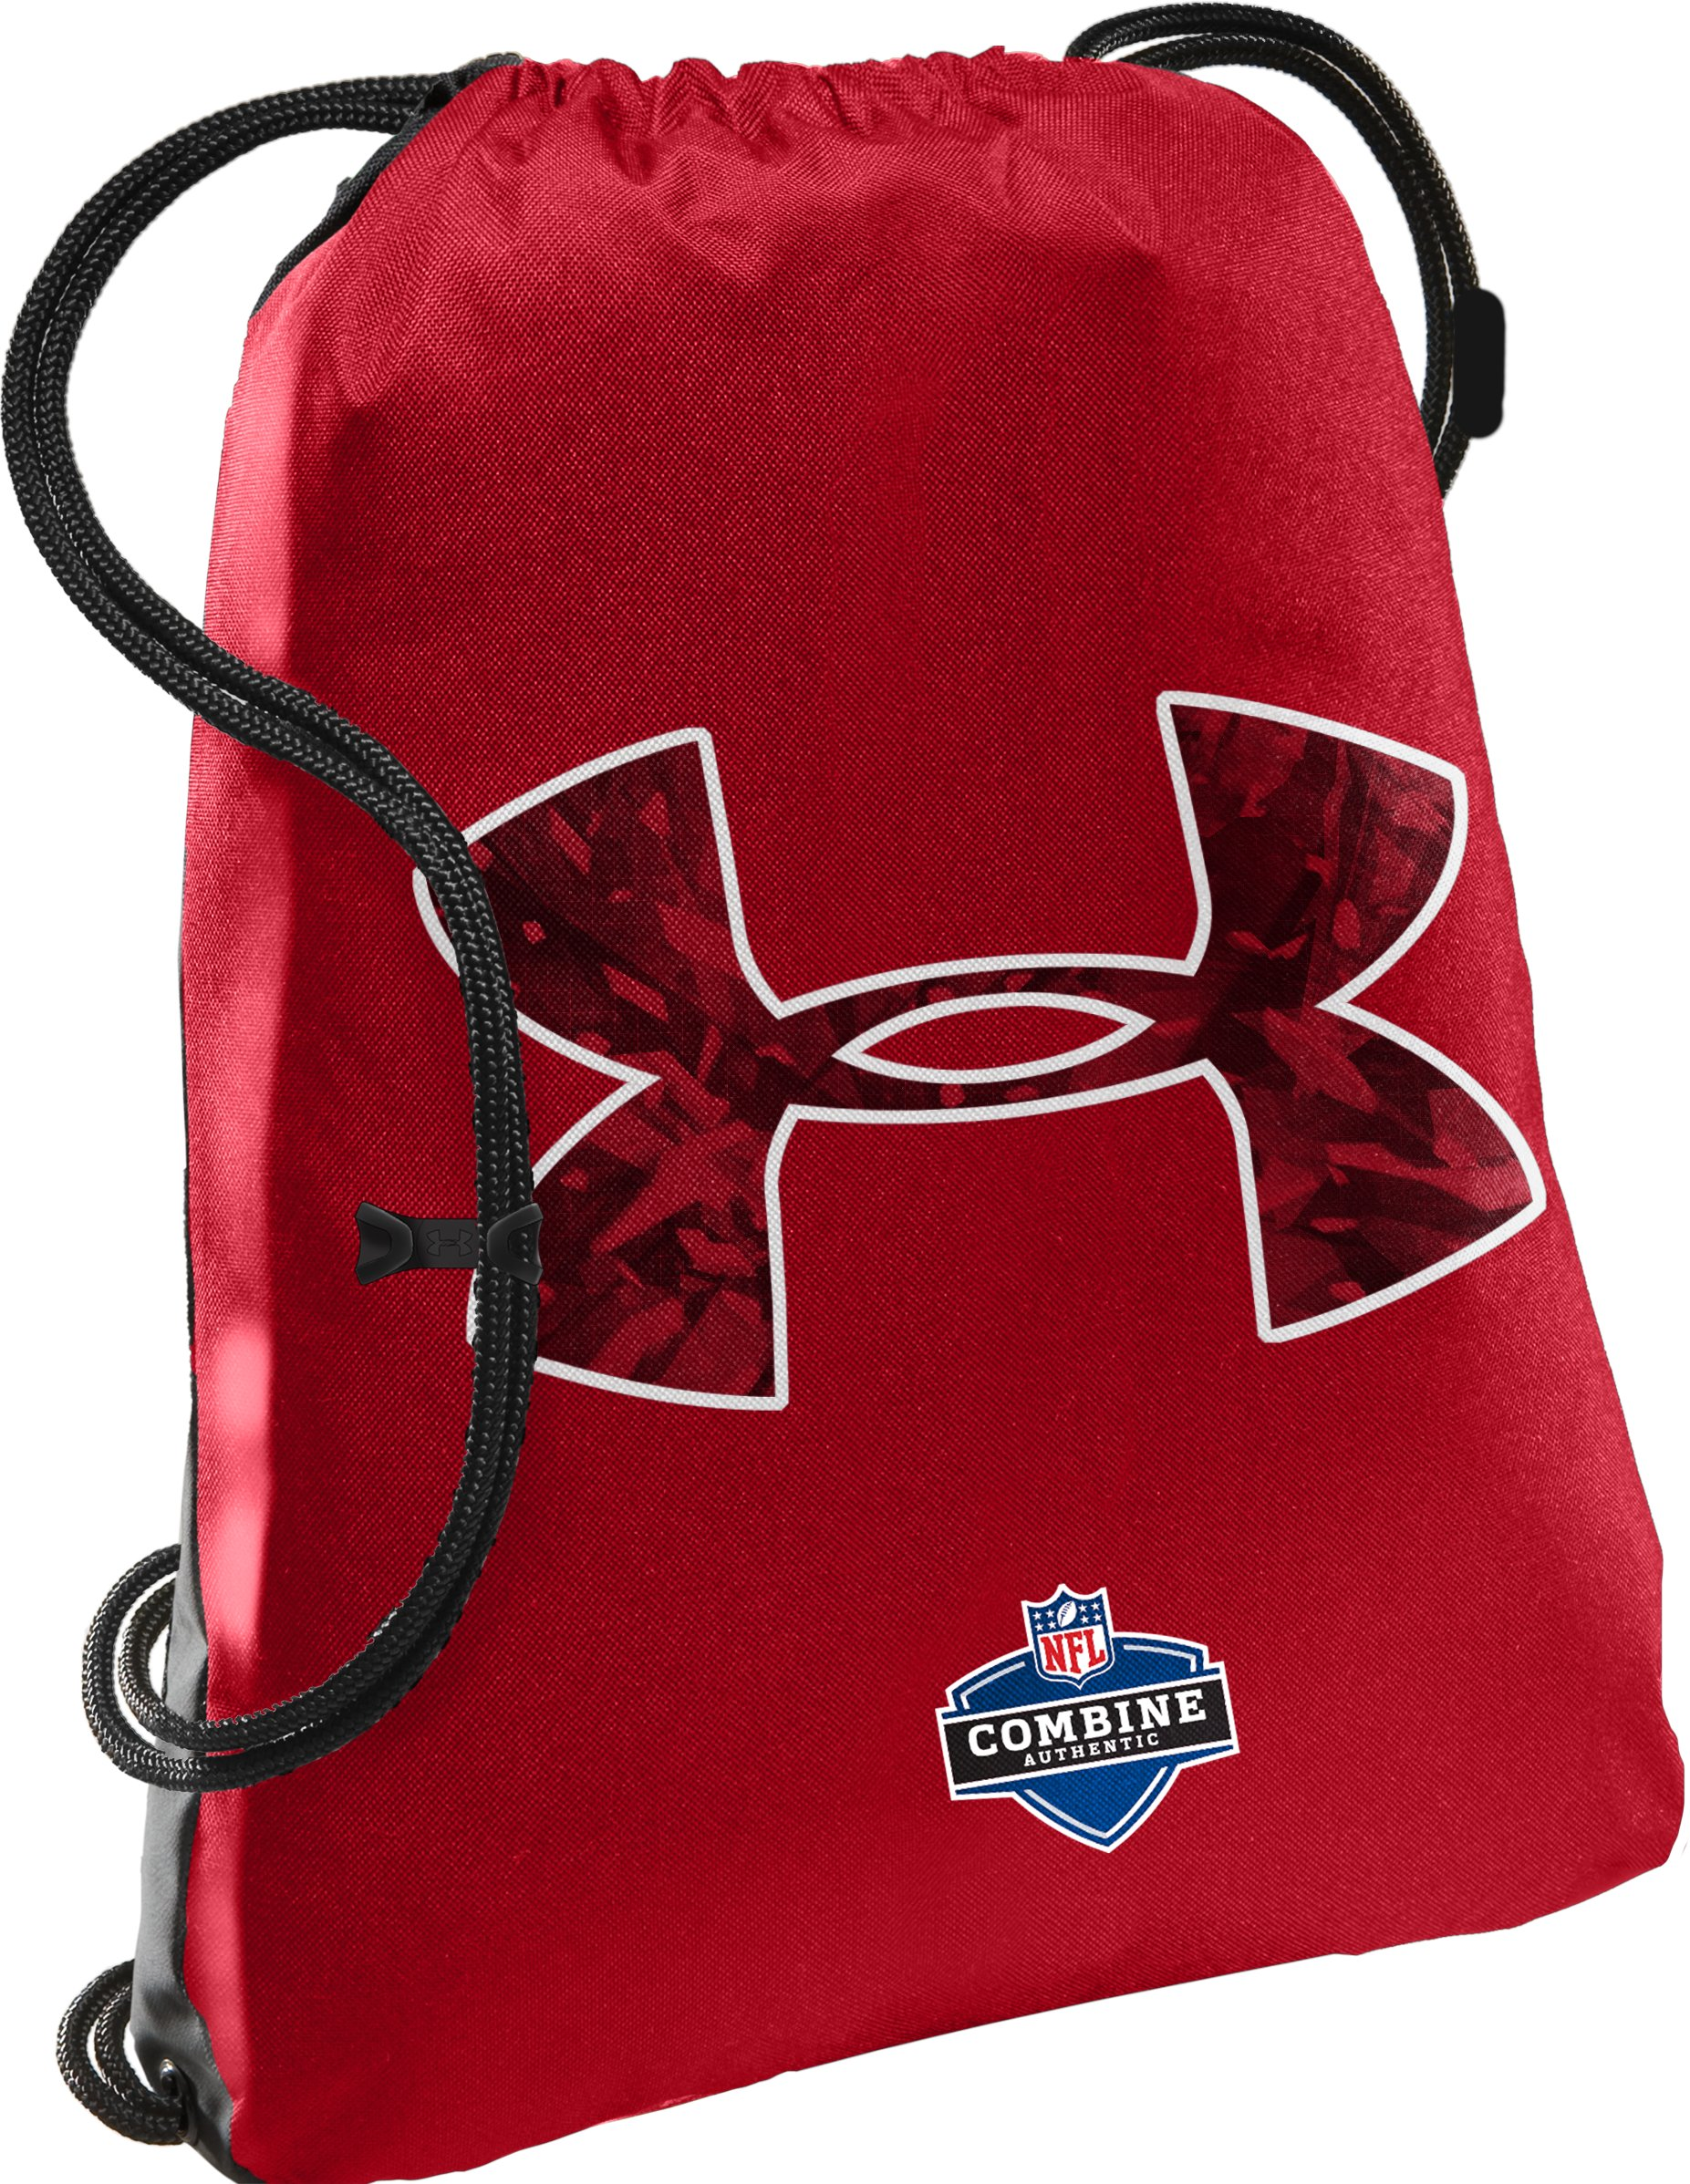 NFL Combine Authentic Tyro Sackpack, Red, zoomed image